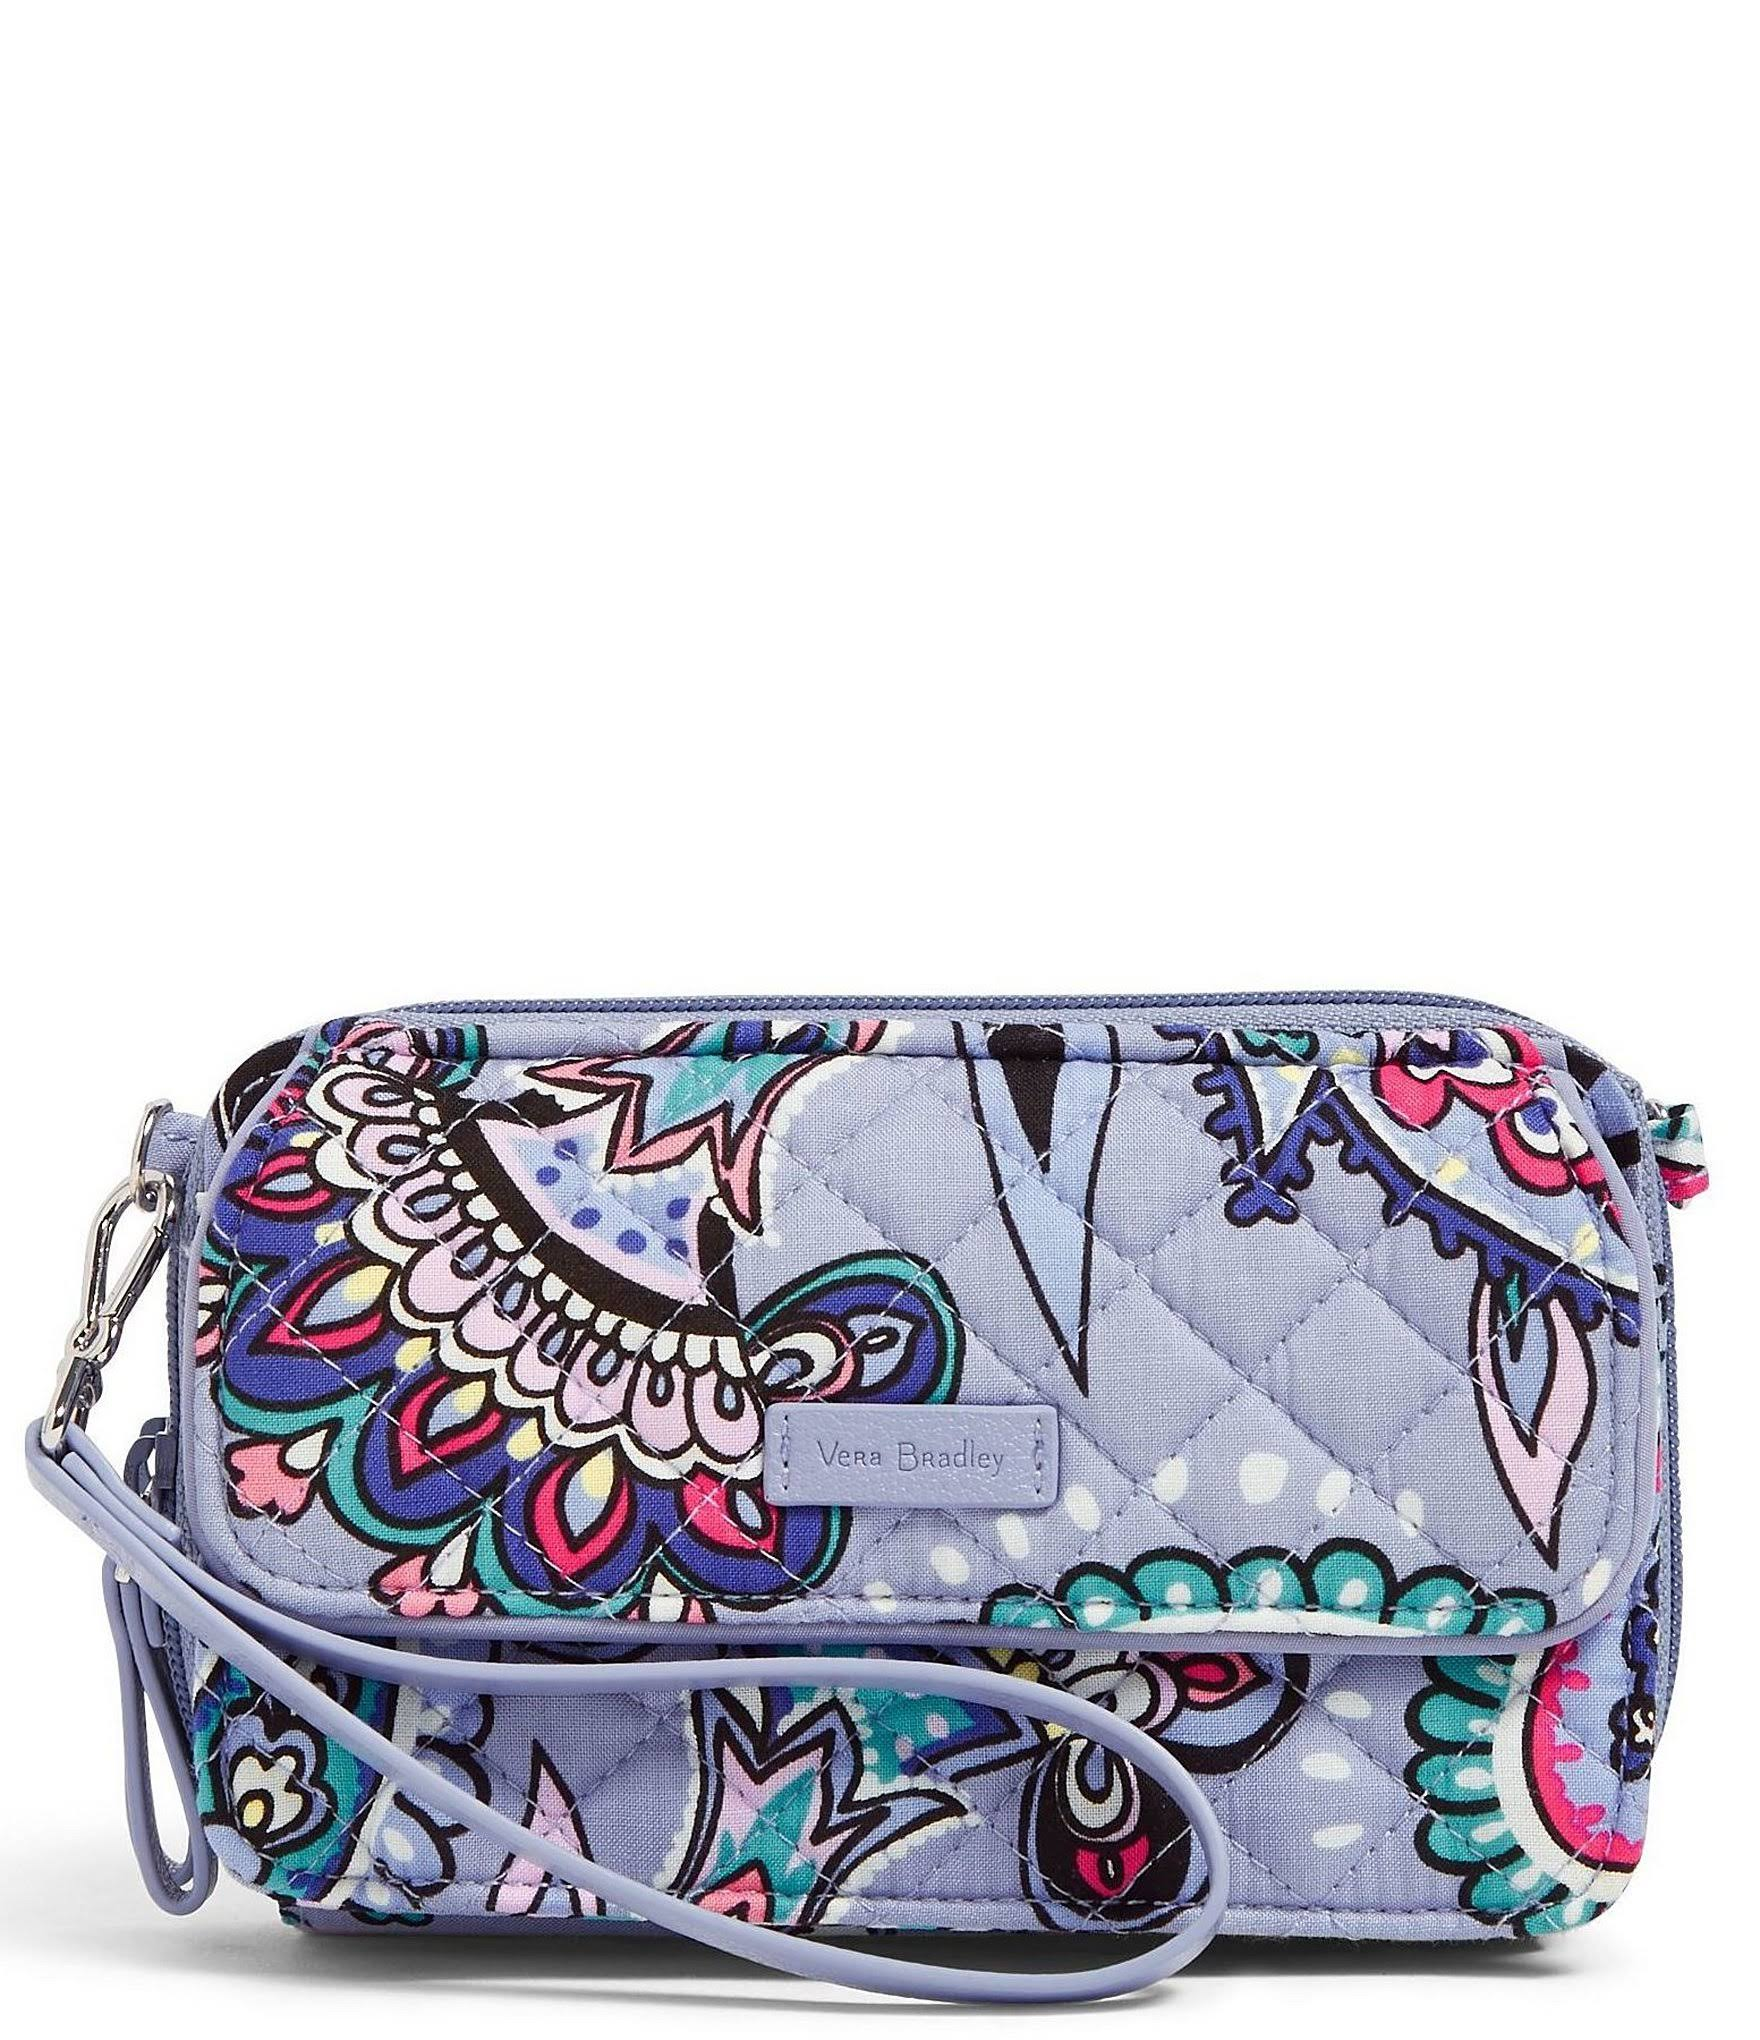 Vera Bradley Iconic RFID All in One Crossbody - Makani Paisley/Silver